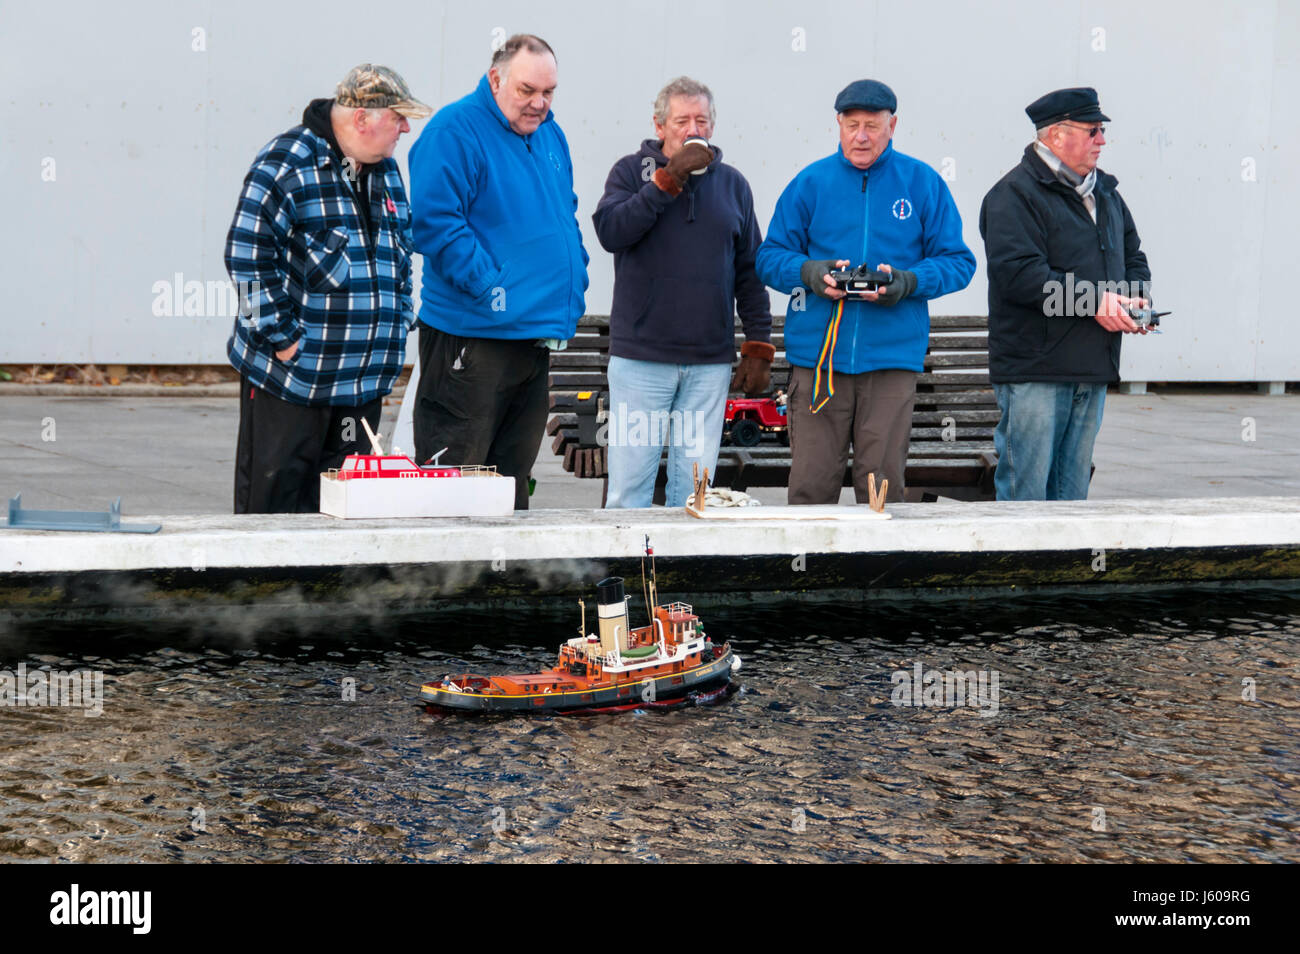 Men with radio controlled model boats in Plymouth. - Stock Image